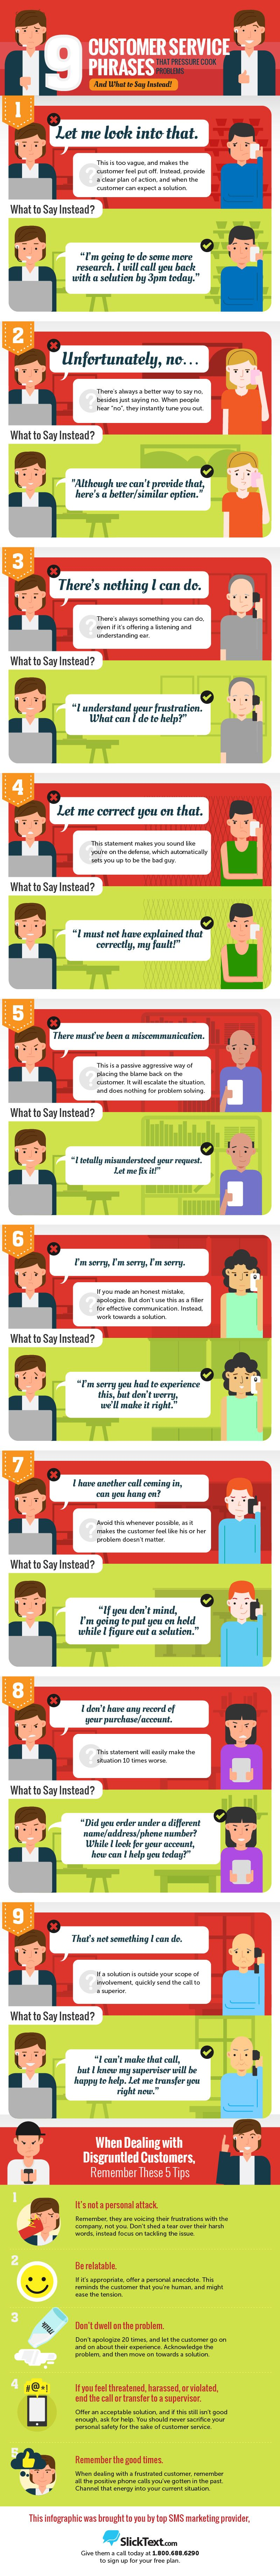 9 Customer Service Phrases that Pressure Cook Problems and What to Say Instead